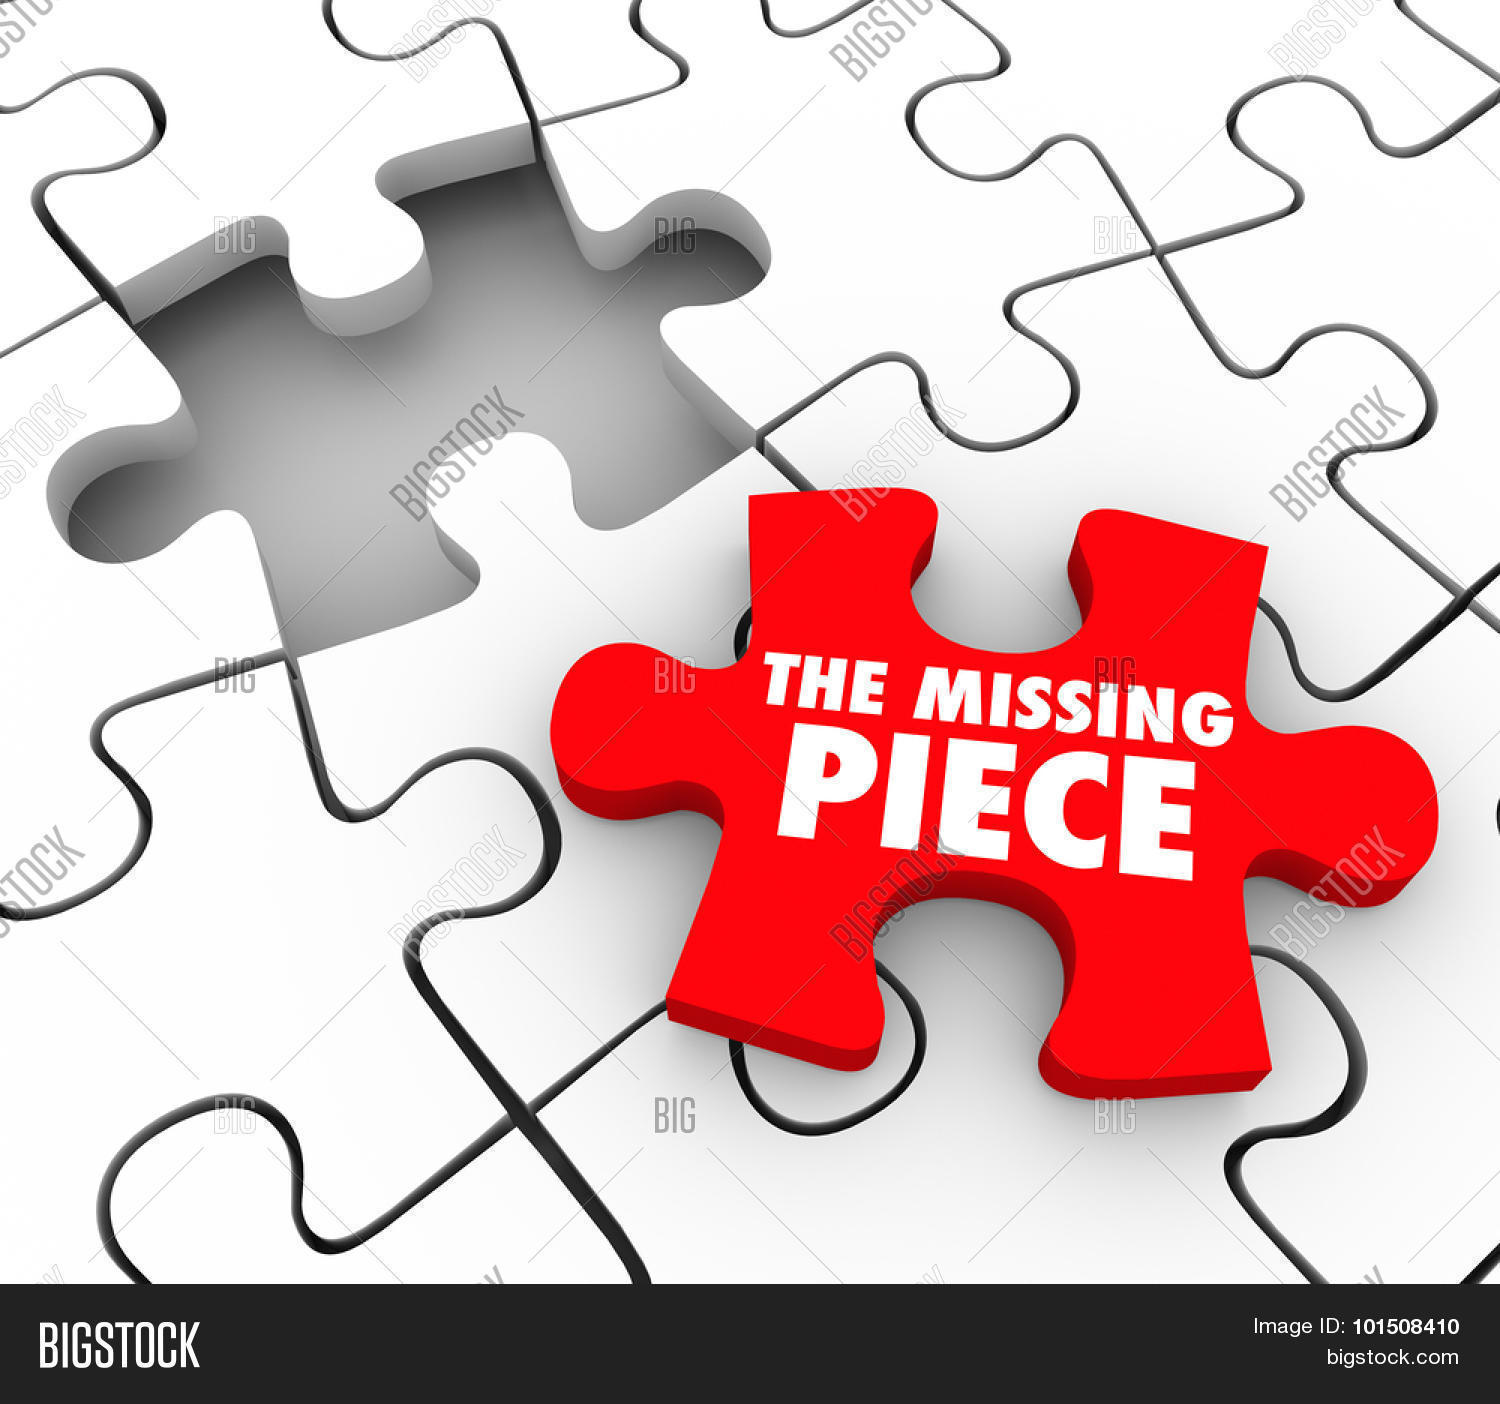 The Missing Piece Words On A Red Puzzle To Complete And Finish